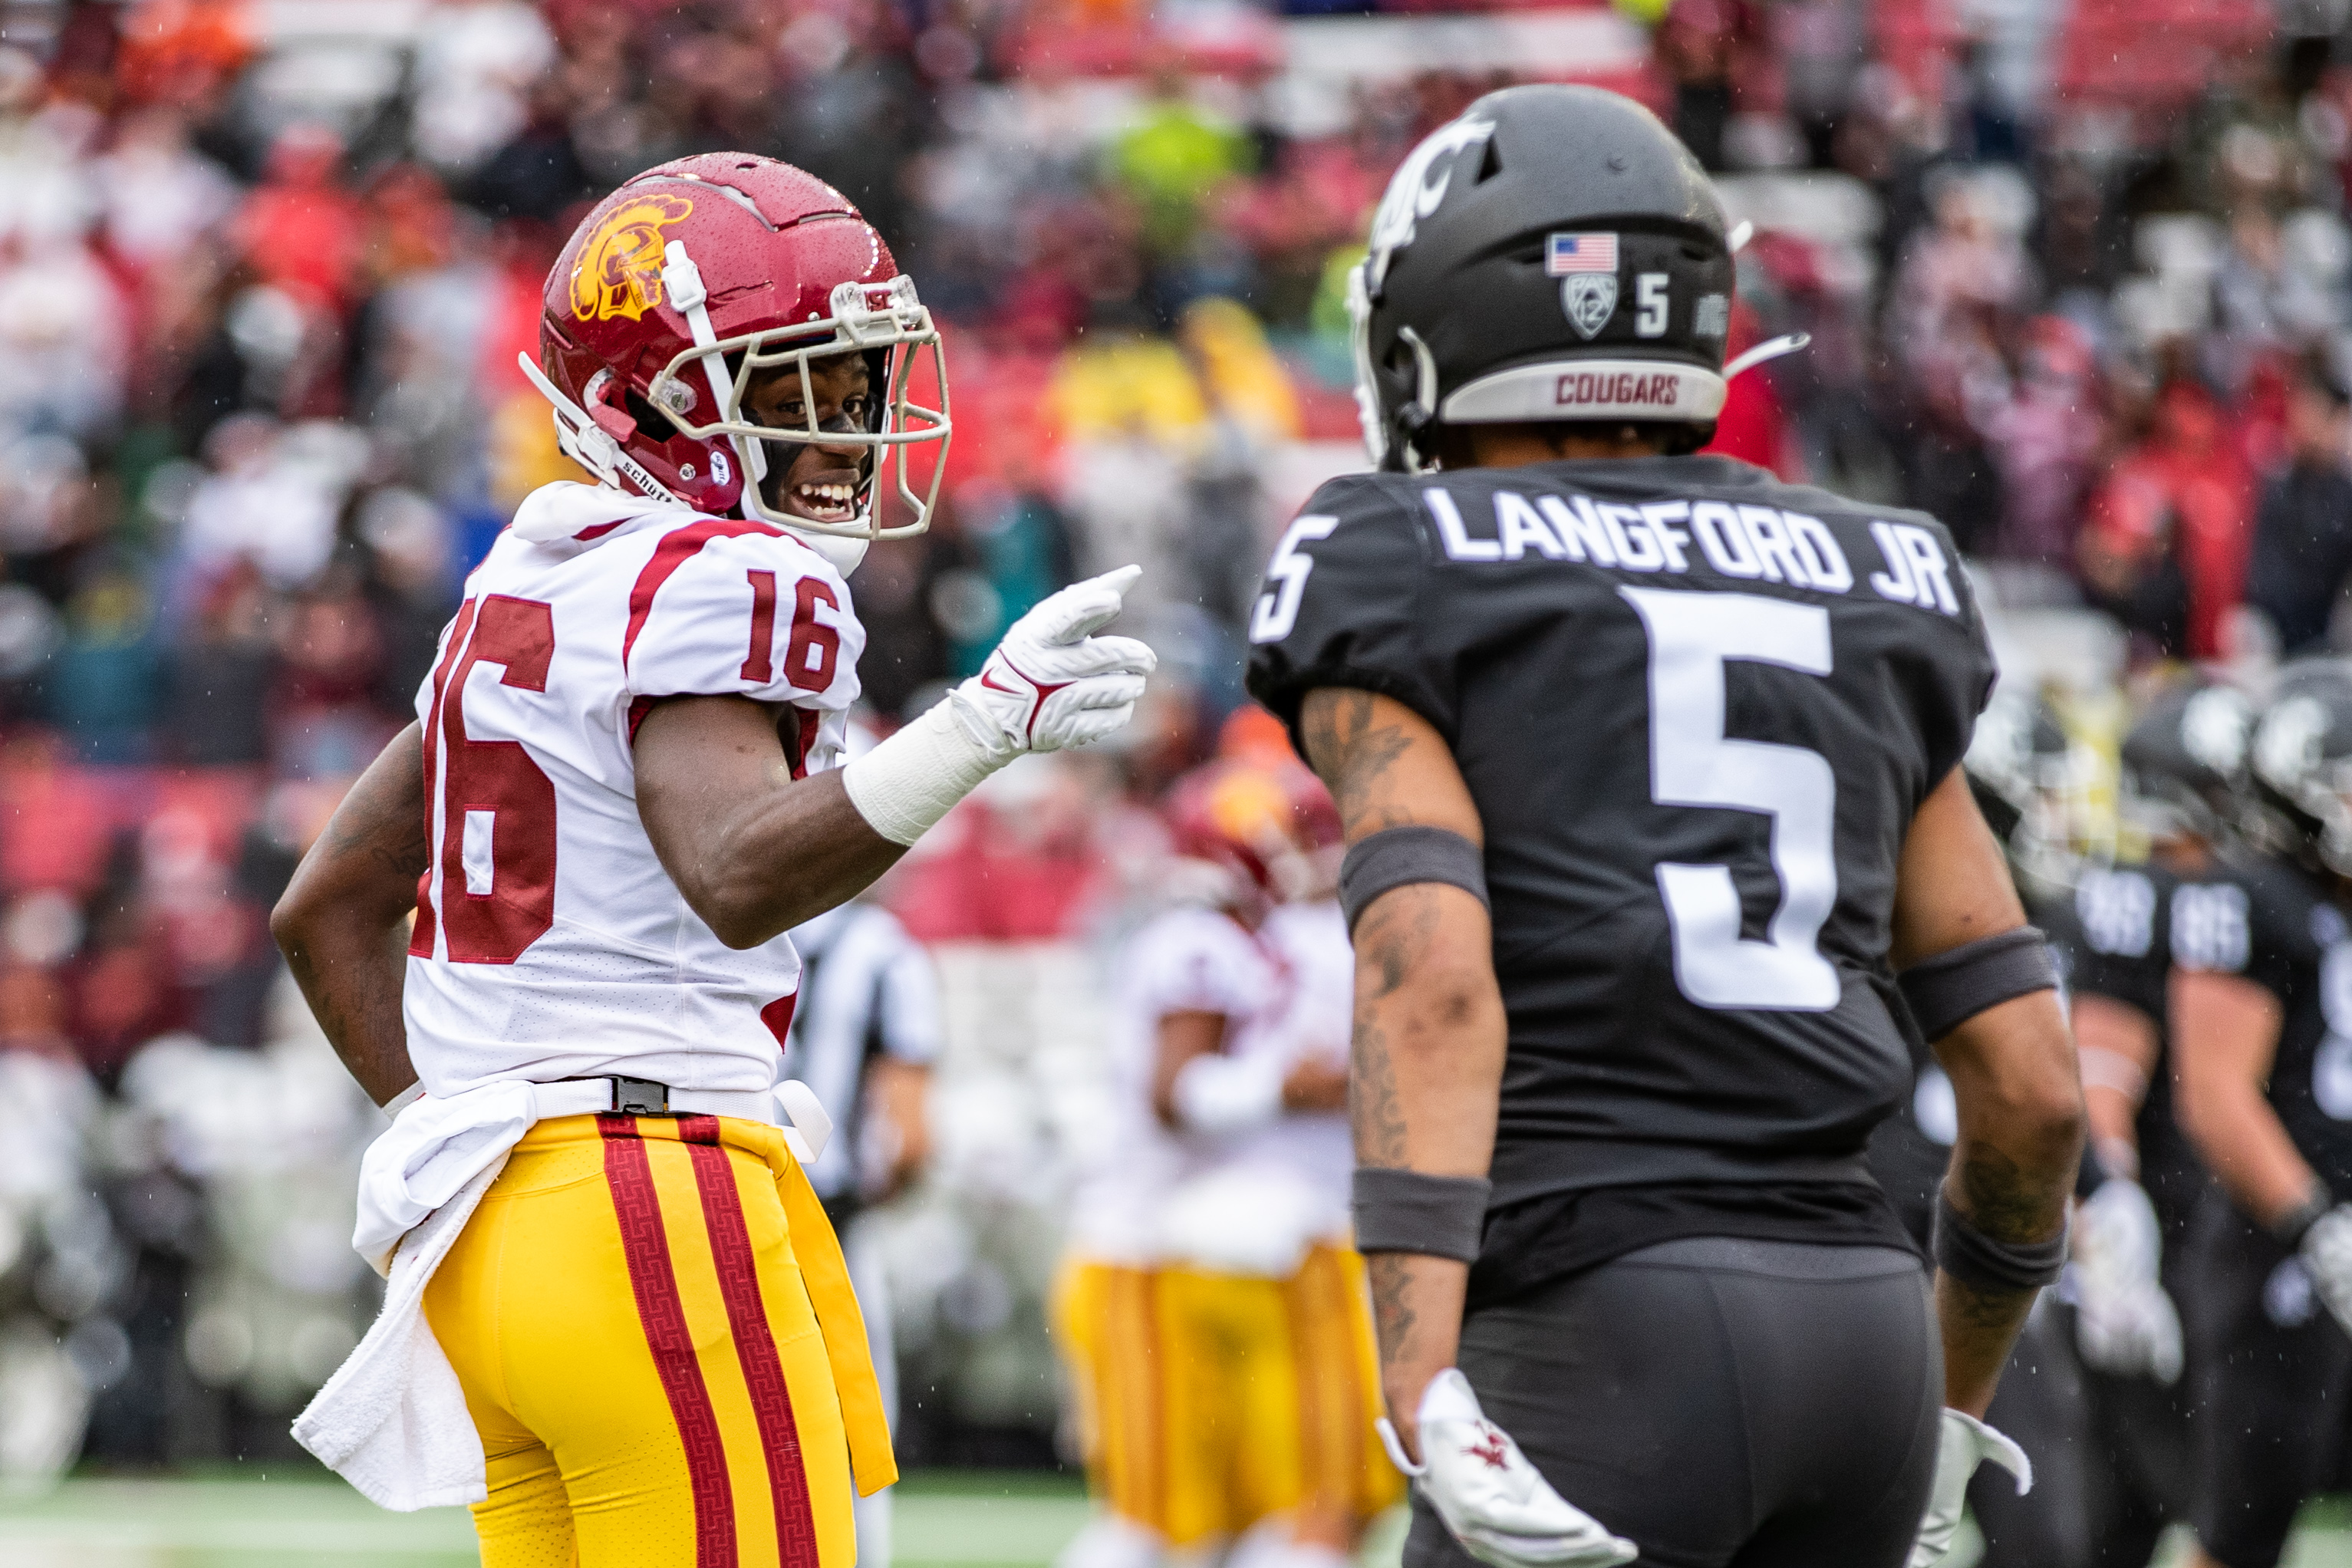 PULLMAN, WA - SEPTEMBER 18: Washington State cornerback Derrick Langford (5) chirps with a USC receiver during the first half of a PAC 12 conference matchup between the USC Trojans and the Washington State Cougars on September 18, 2021, at Martin Stadium in Pullman, WA.